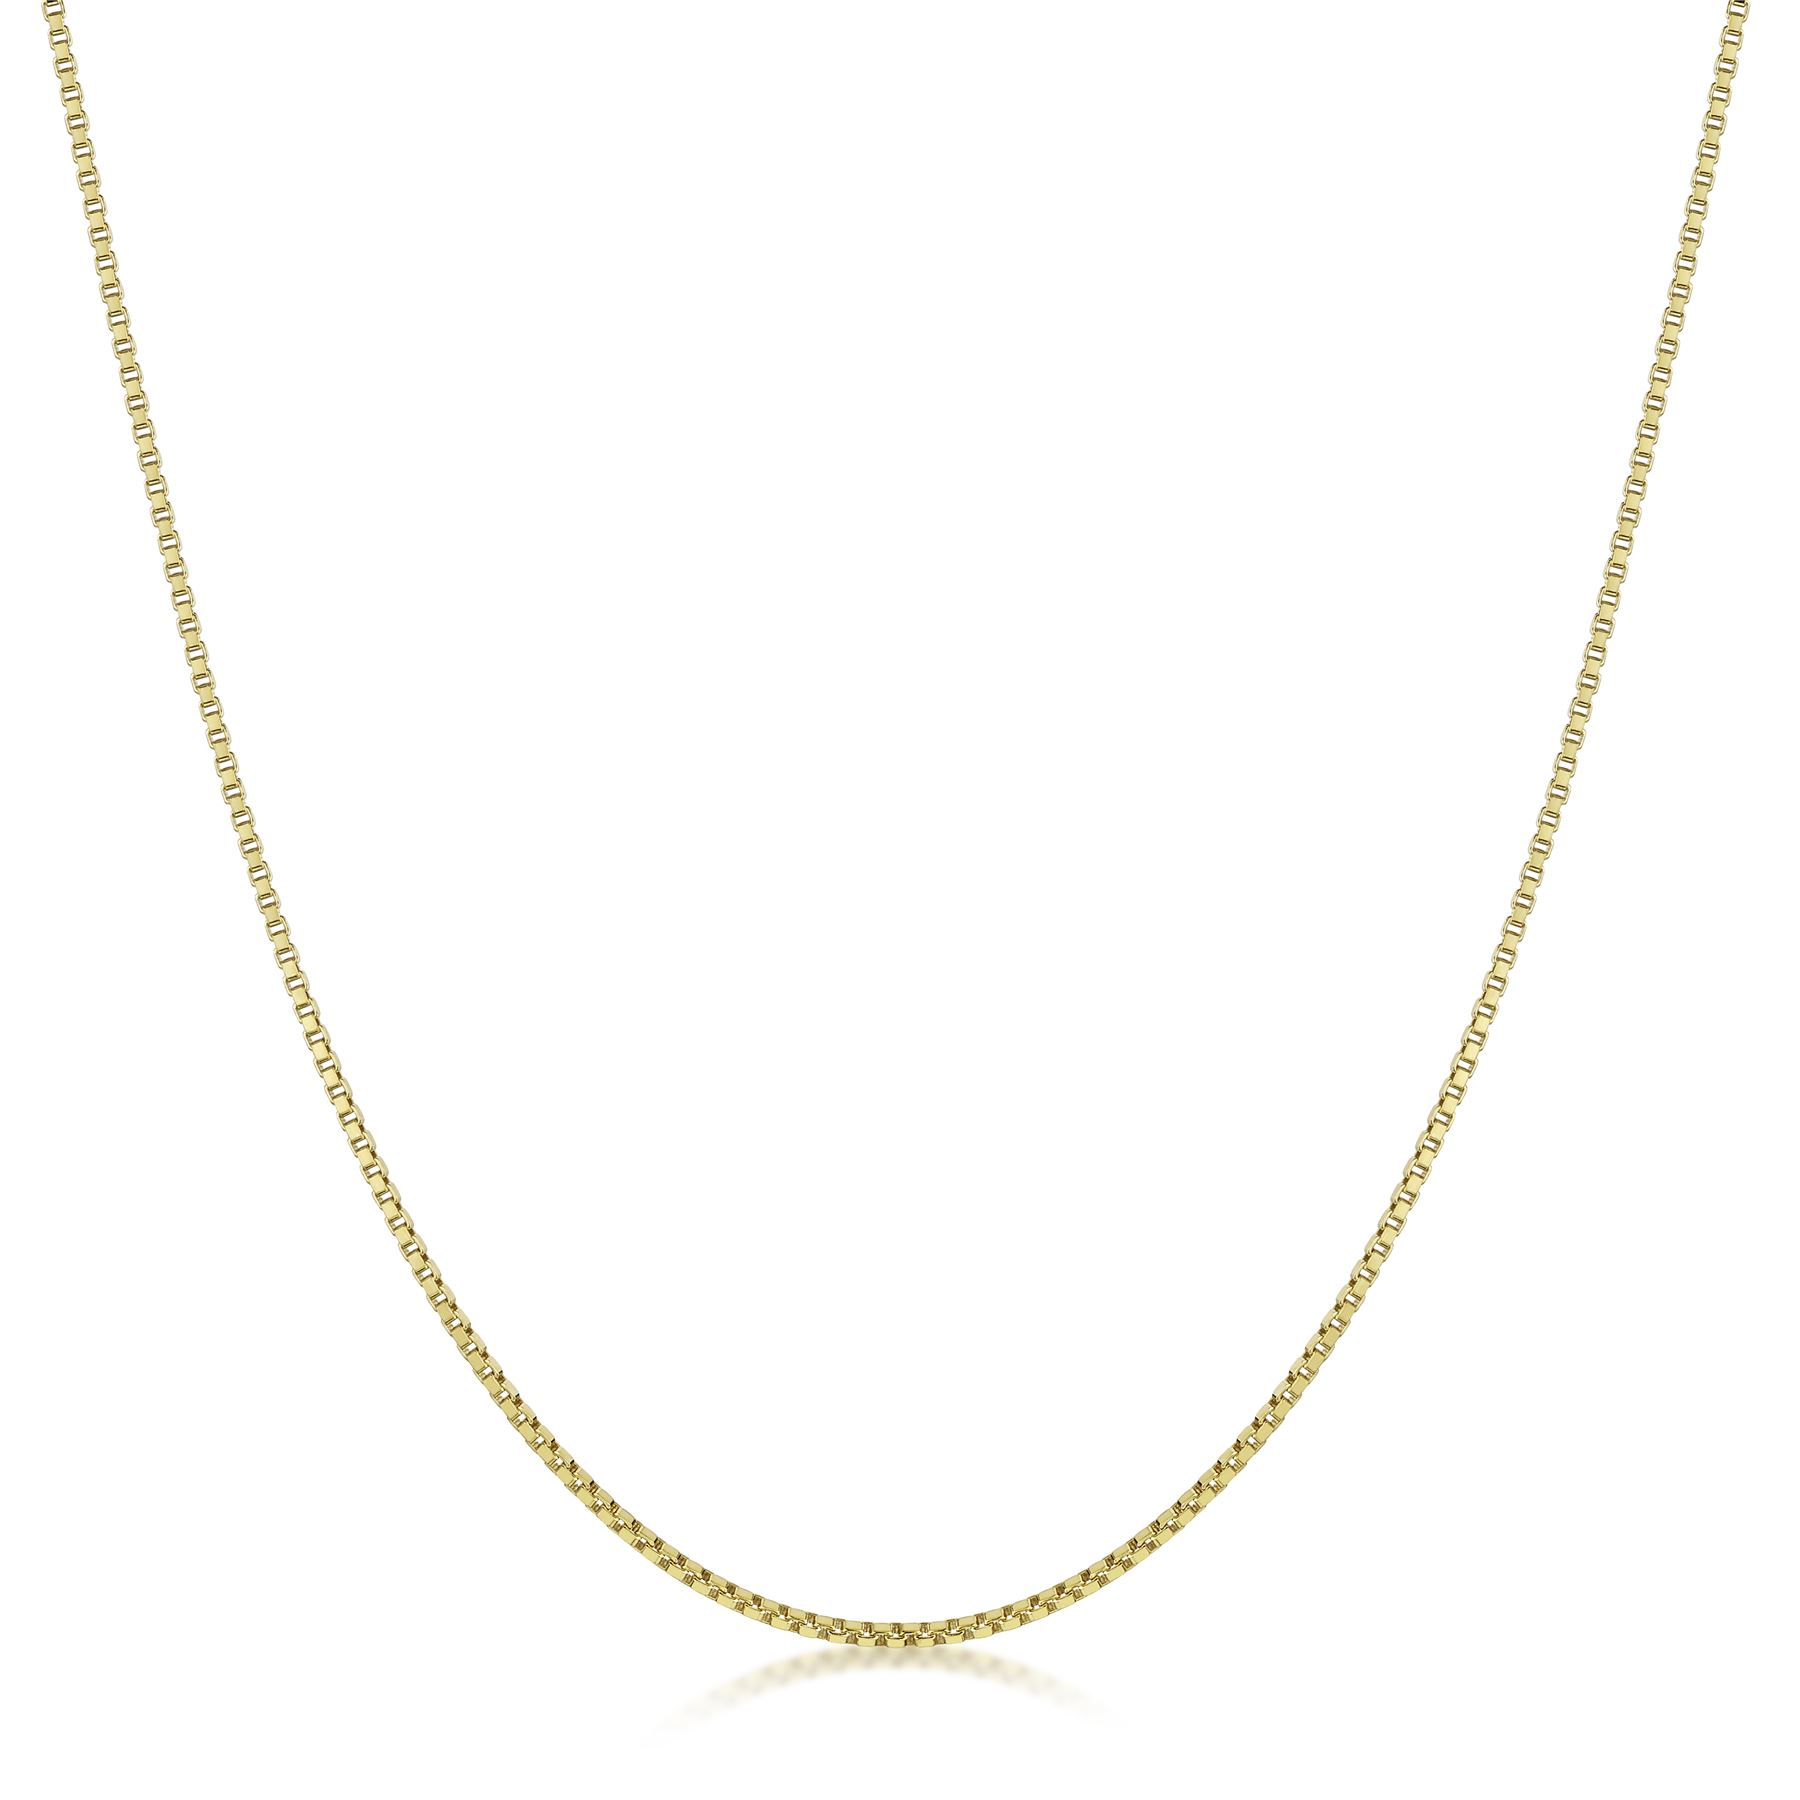 Amberta-Genuine-Gold-Plated-on-Real-925-Sterling-Silver-Necklace-Chain-Italy miniatura 3